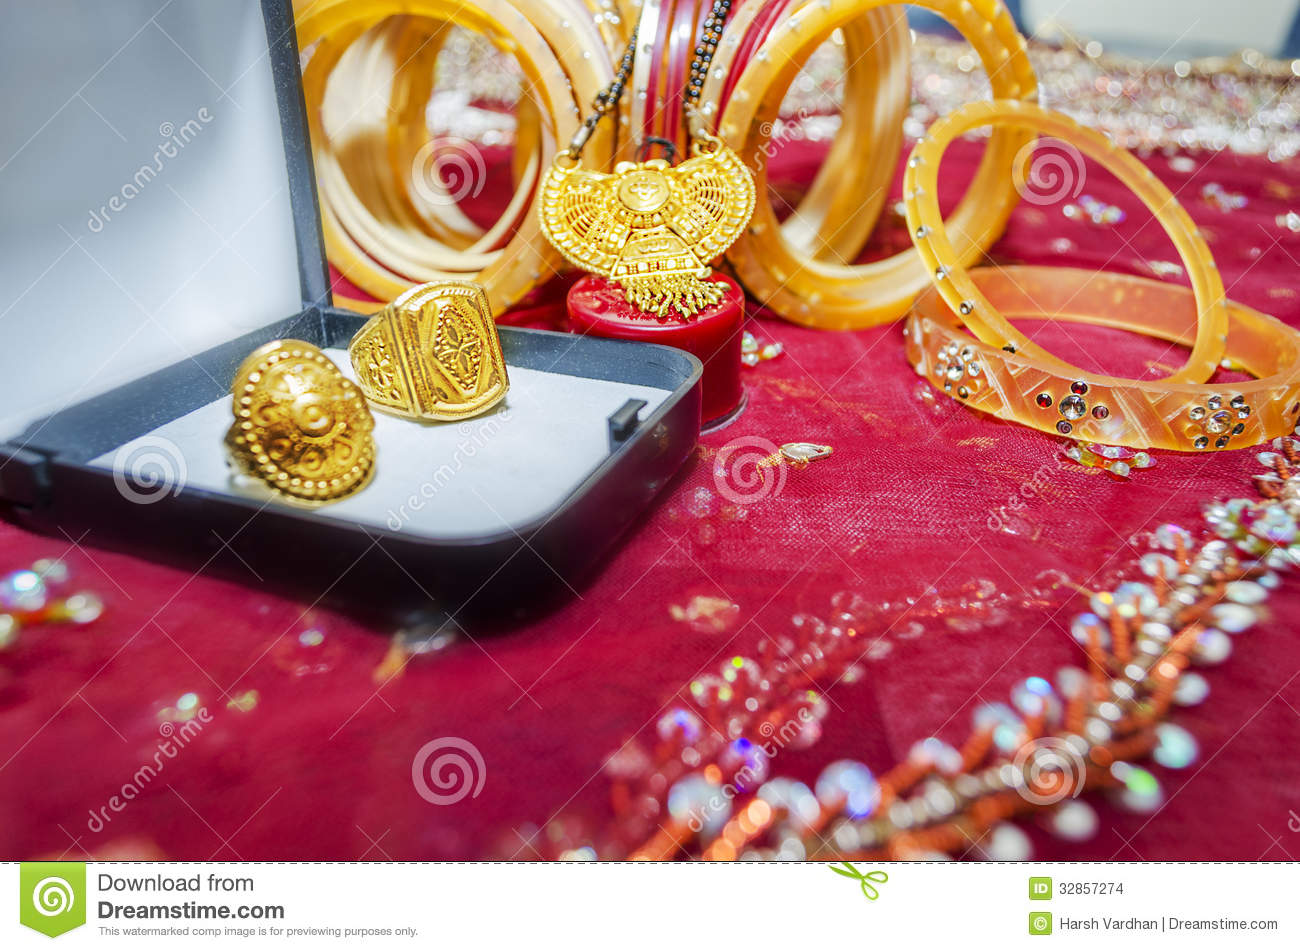 wedding rings and accessories stock images - Indian Wedding Rings